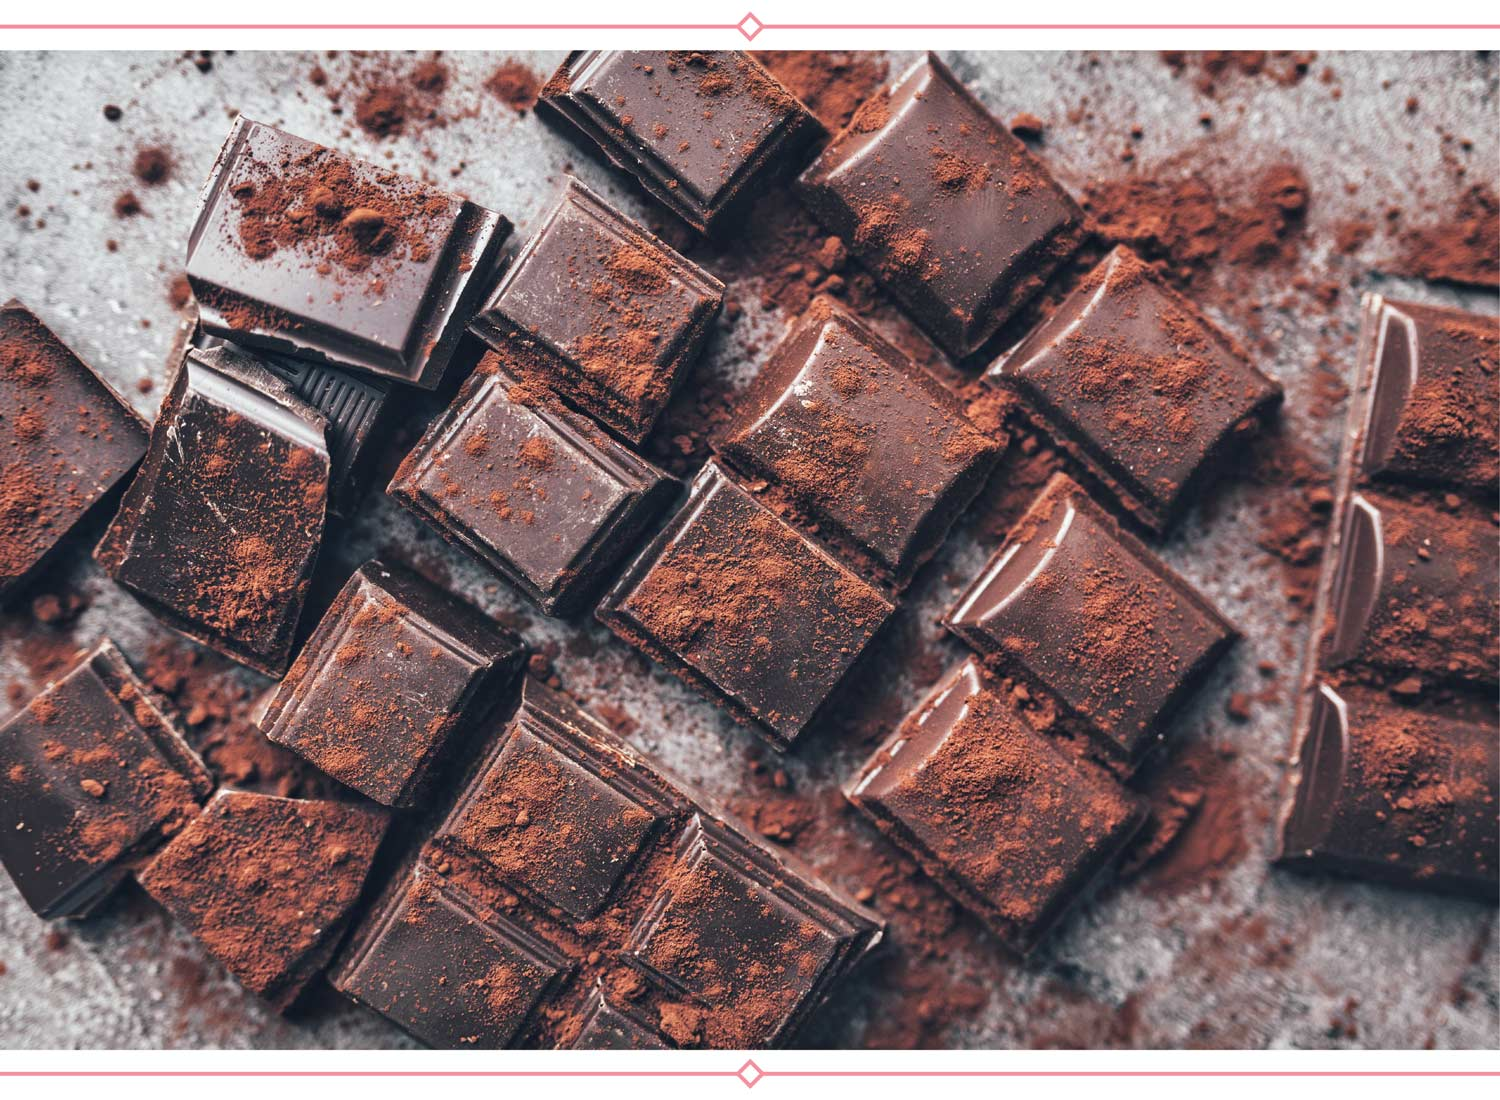 dark chocolate pieces with cocoa powder